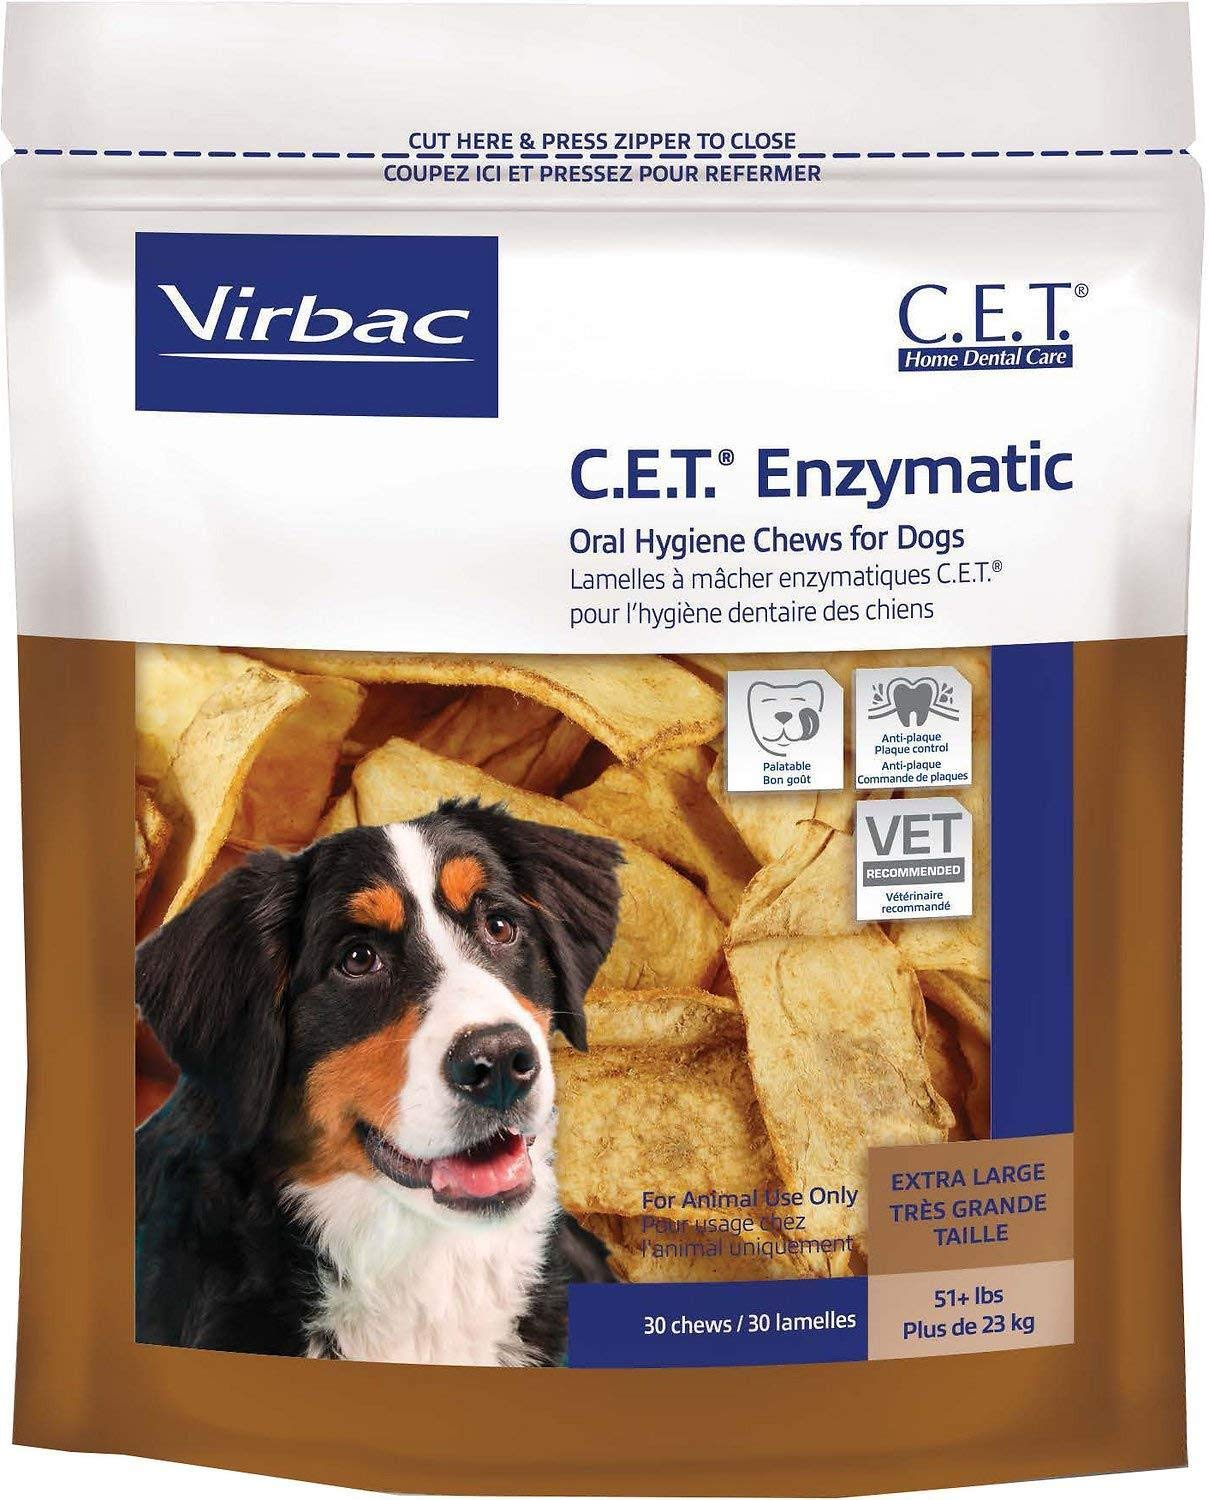 C.E.T. Enzymatic Oral Hygiene Chews for Extra Large Dogs (51+ Pounds) - 90 (chews) by Virbac by virbac